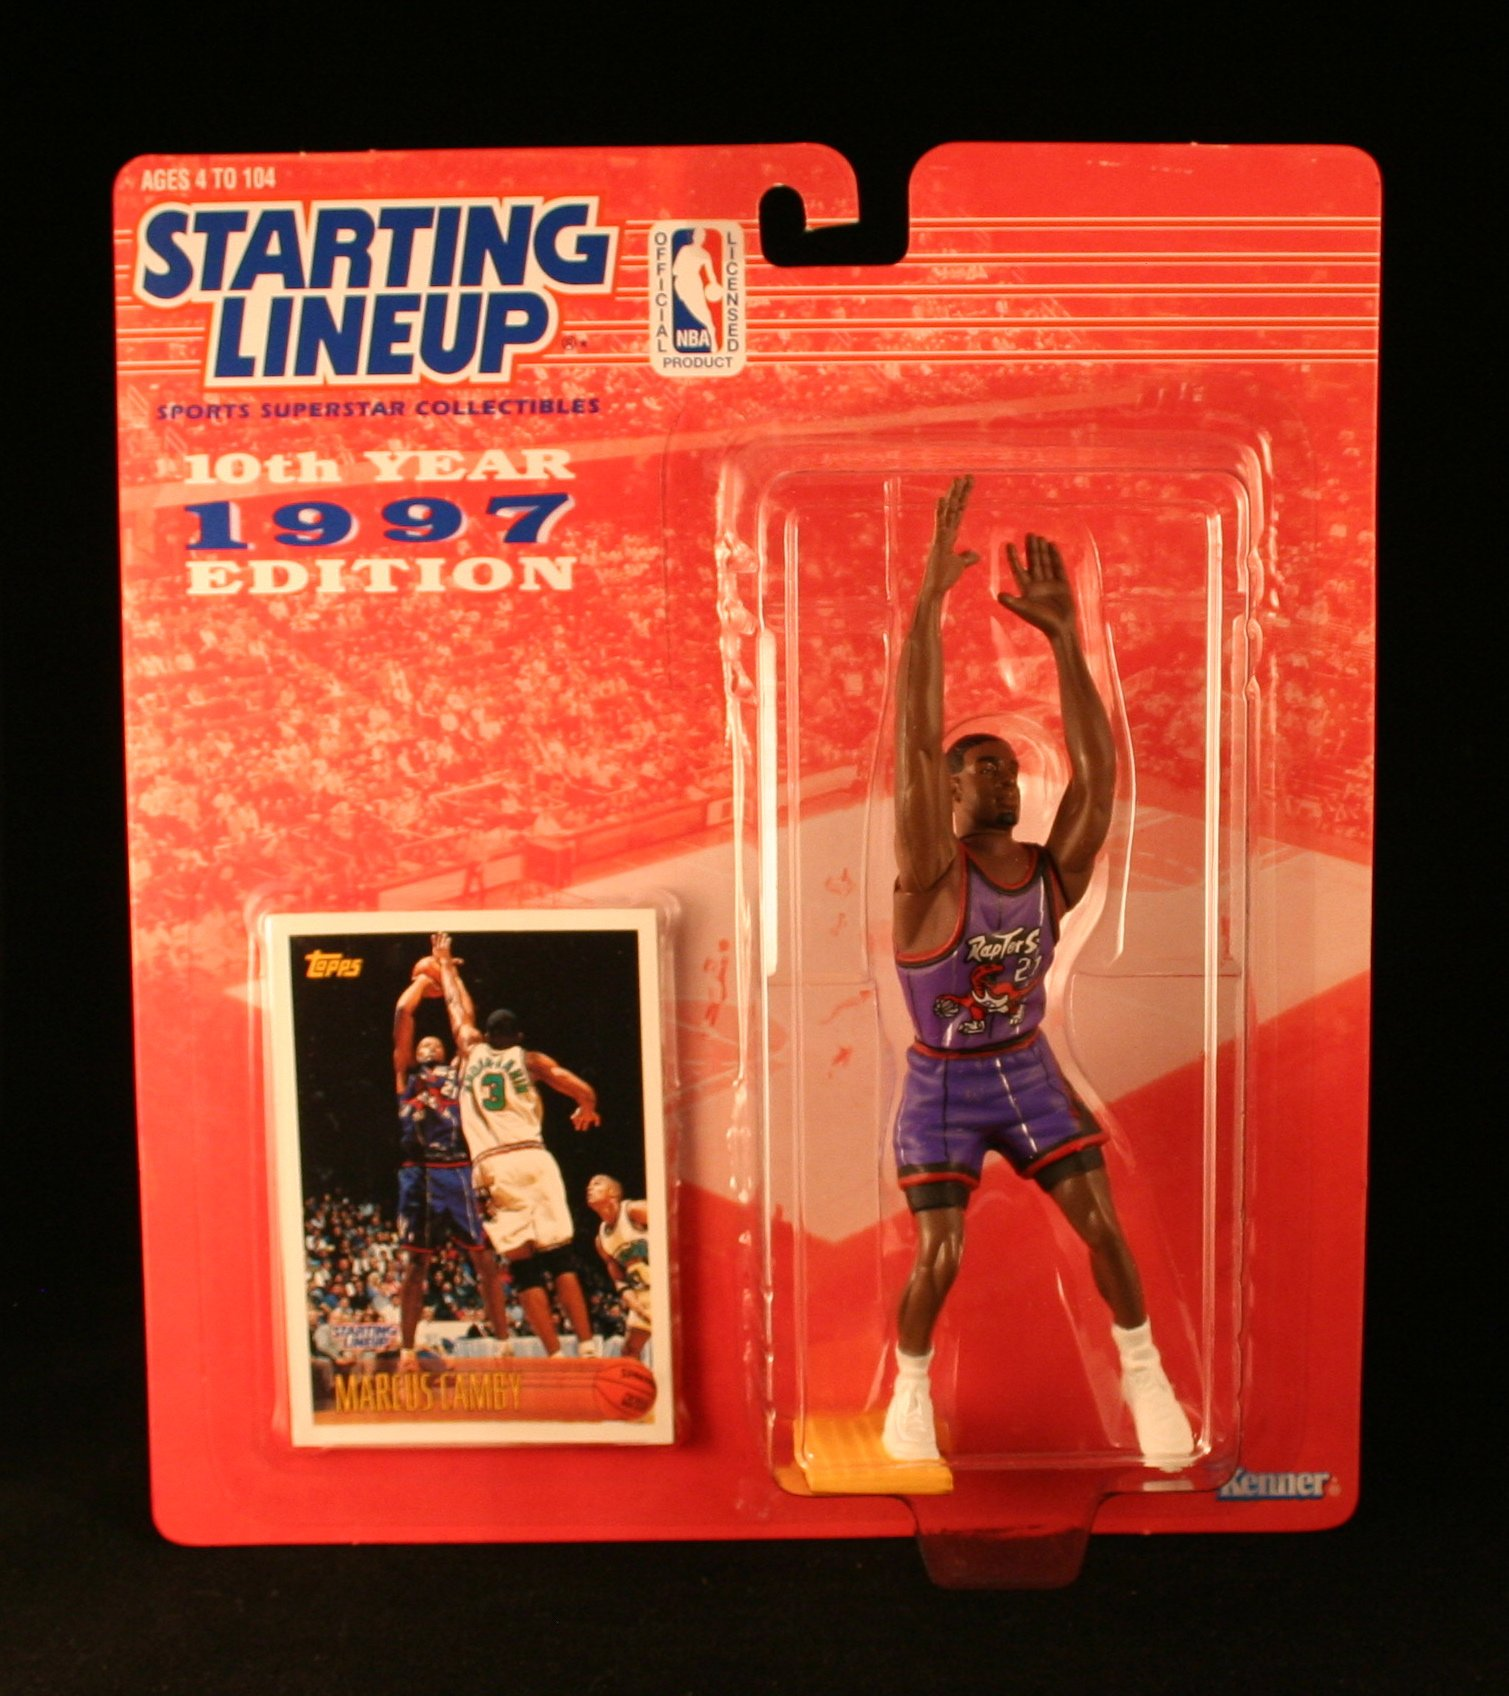 Starting Lineup MARCUS CAMBY / TORONTO RAPTORS 1997 NBA Kenner Exclusive TOPPS Collector Trading Card